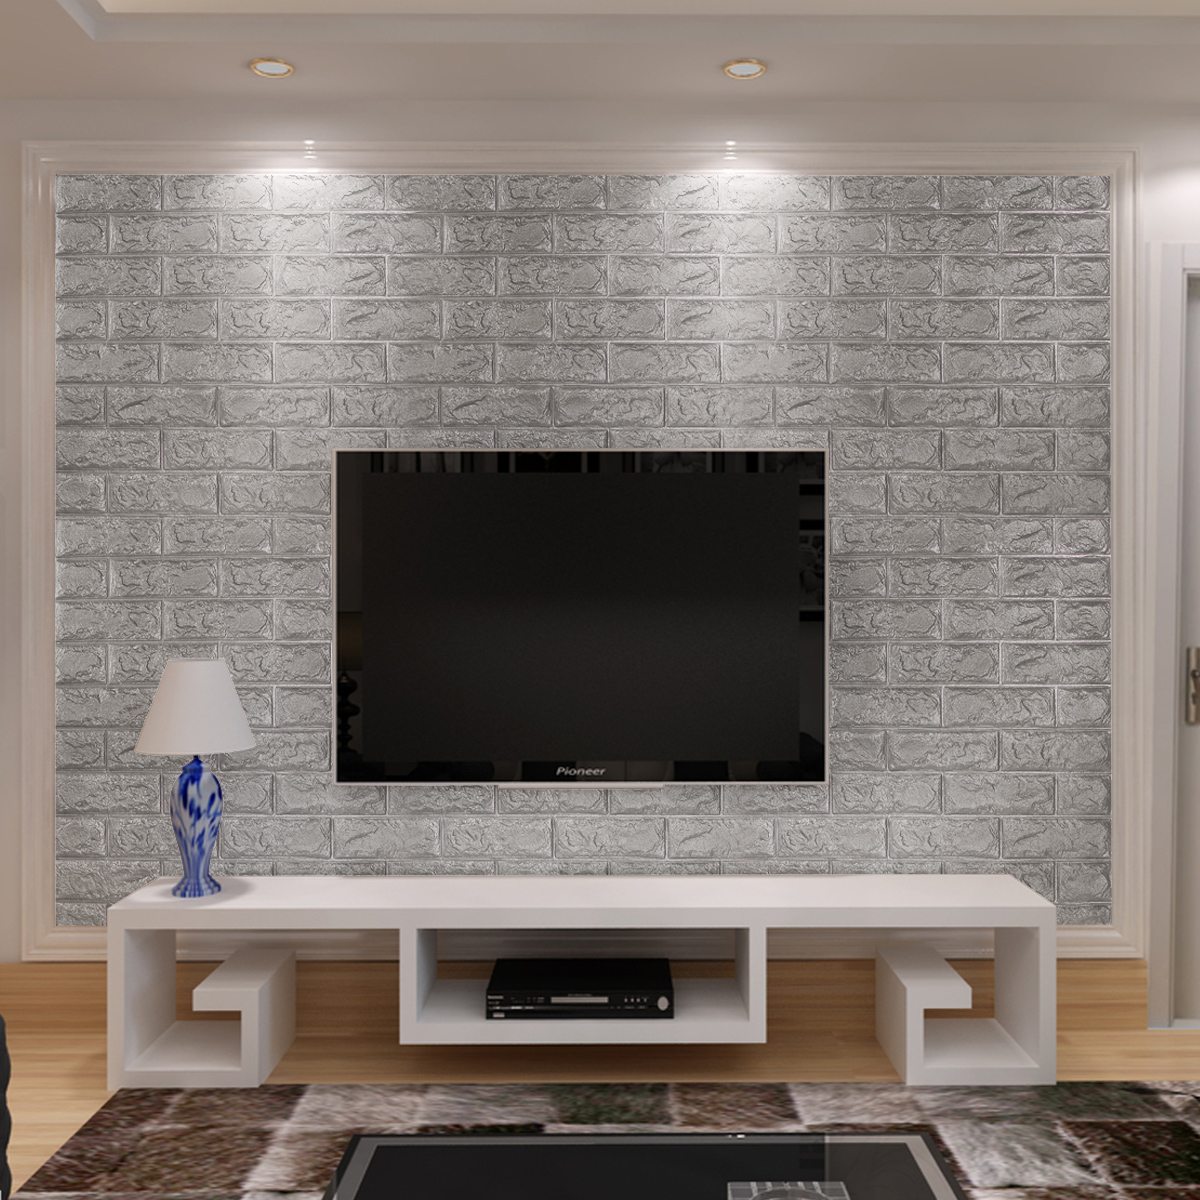 3D Brick Pattern Wallpaper Bedroom Living Room Modern Wall Sticker TV Background Decor